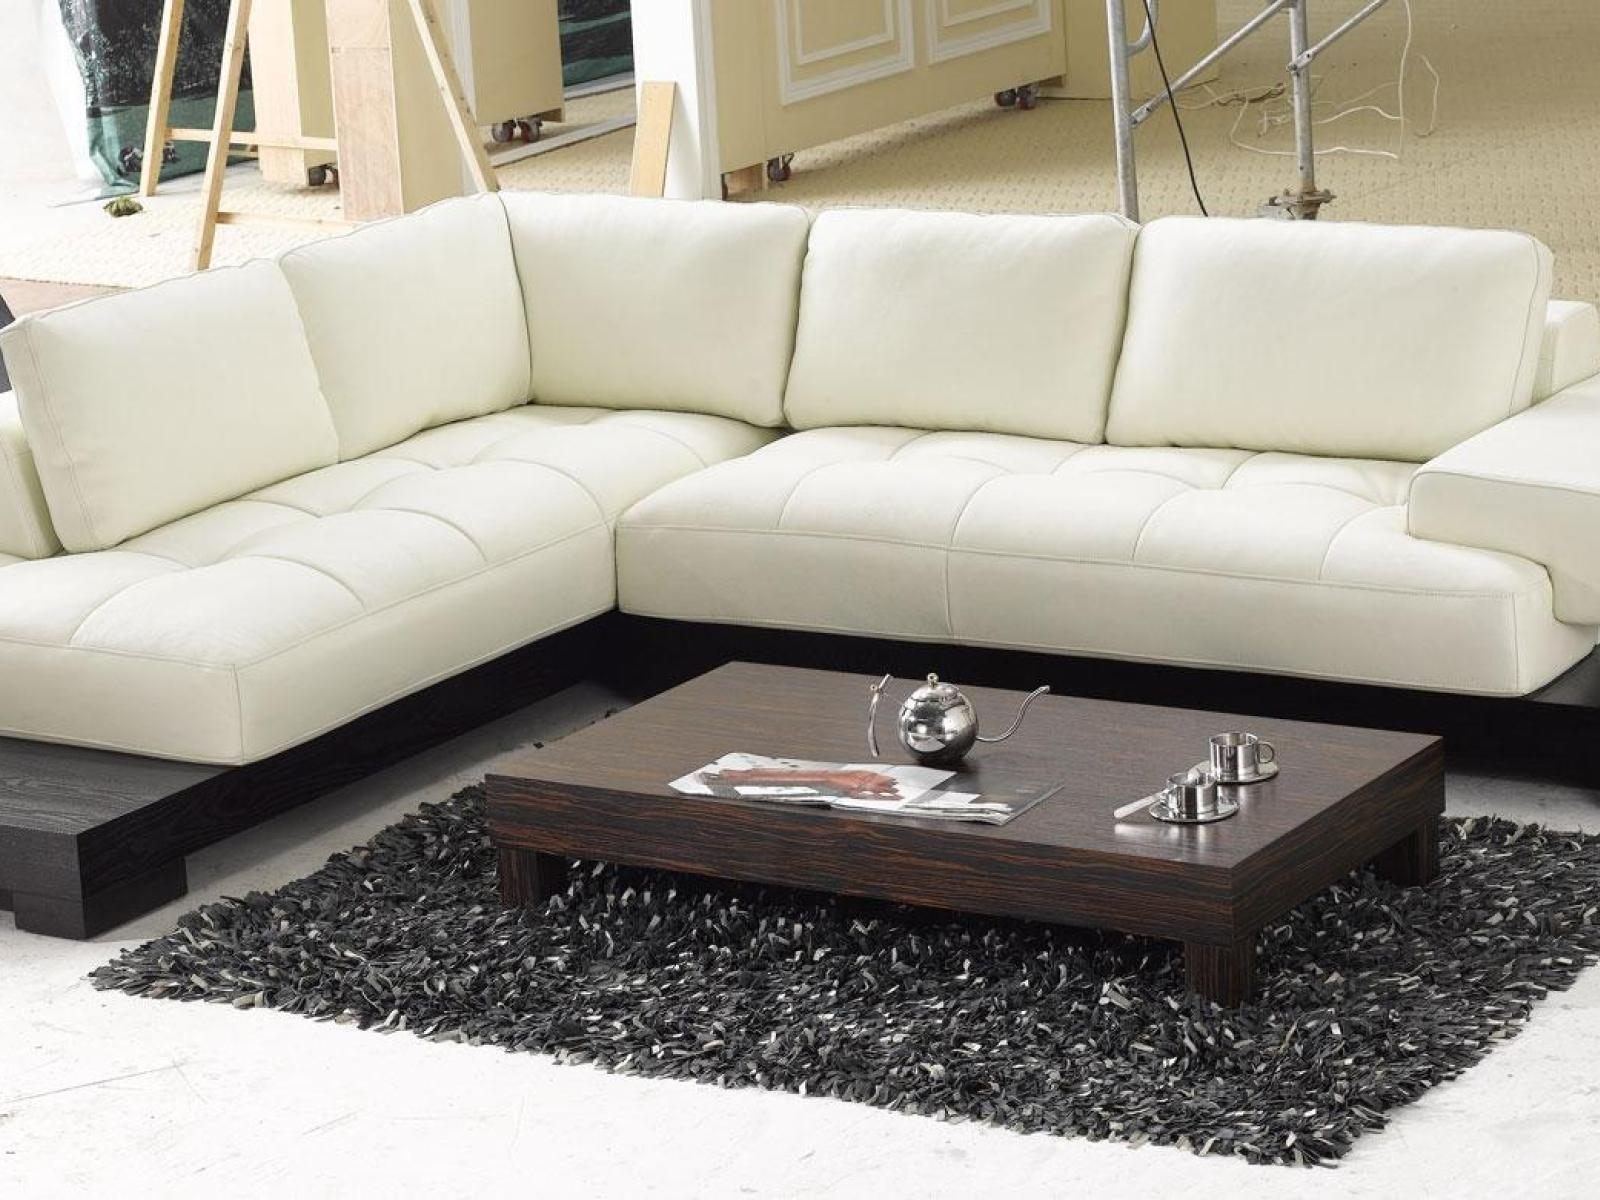 ▻ Sofa : 11 Lovely Contemporary Leather Couch Beige Leather With Regard To Beige Leather Couches (View 15 of 20)